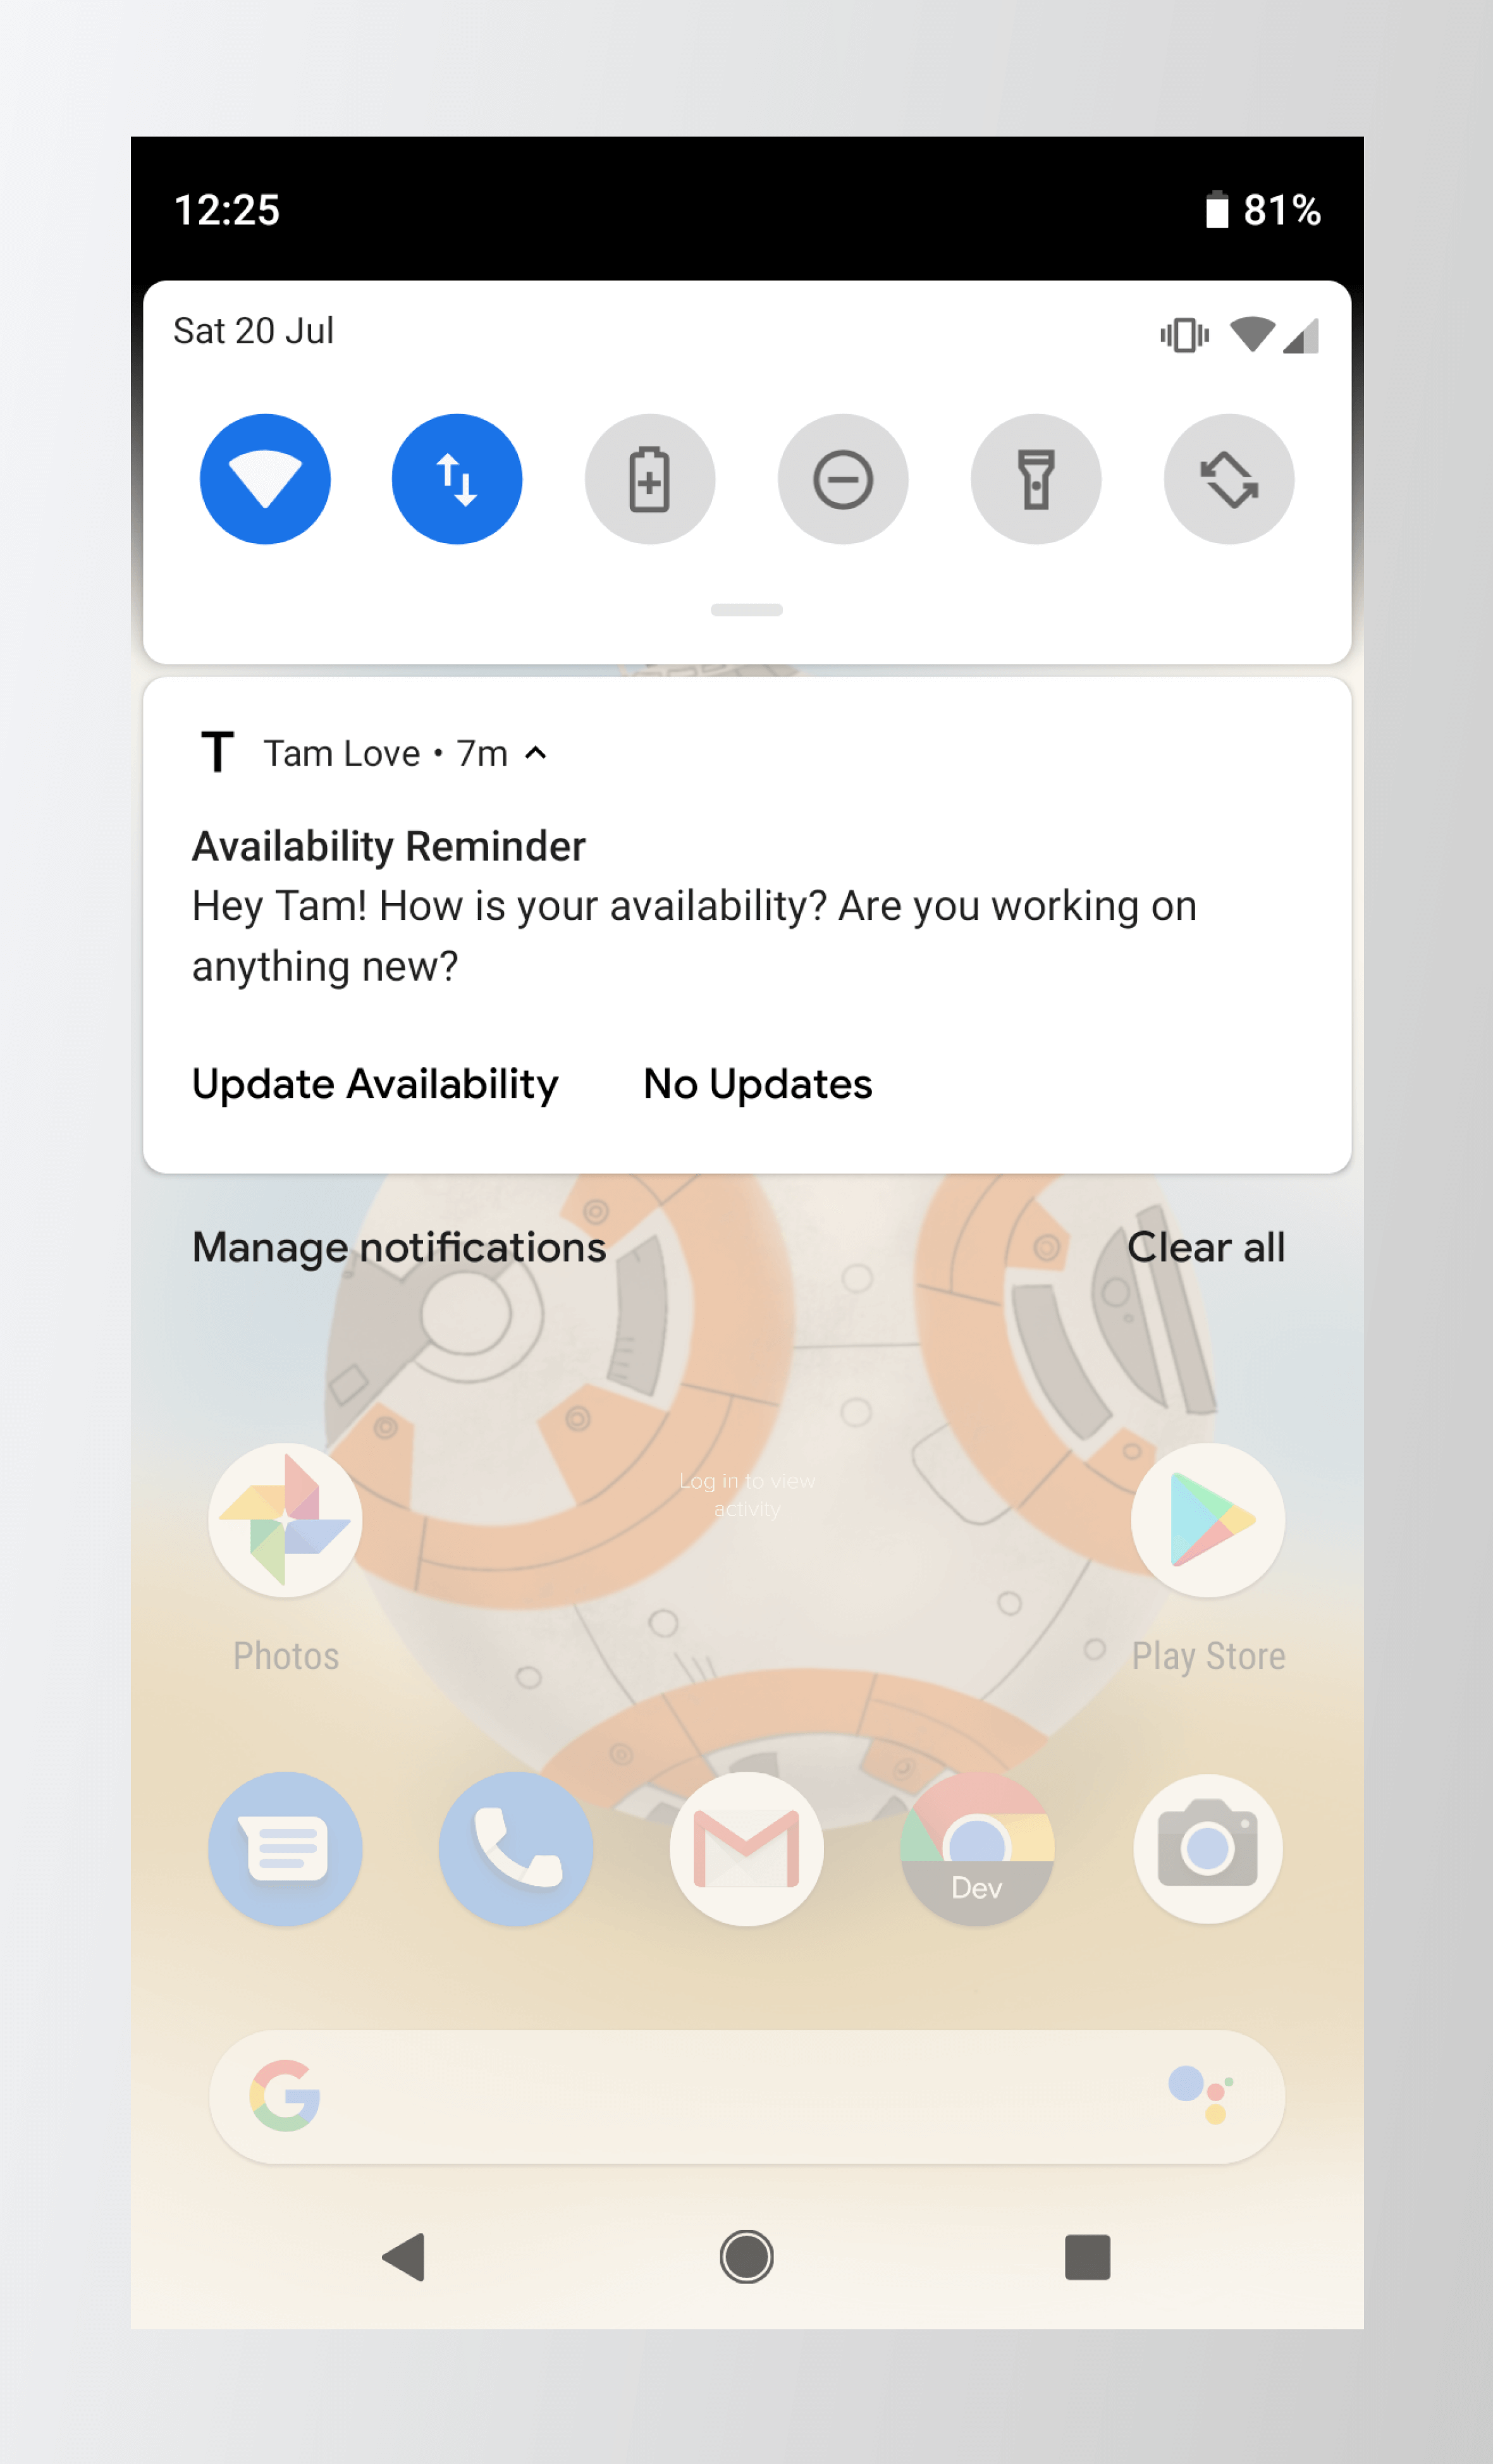 Tam Love Work Availability App Notification Image